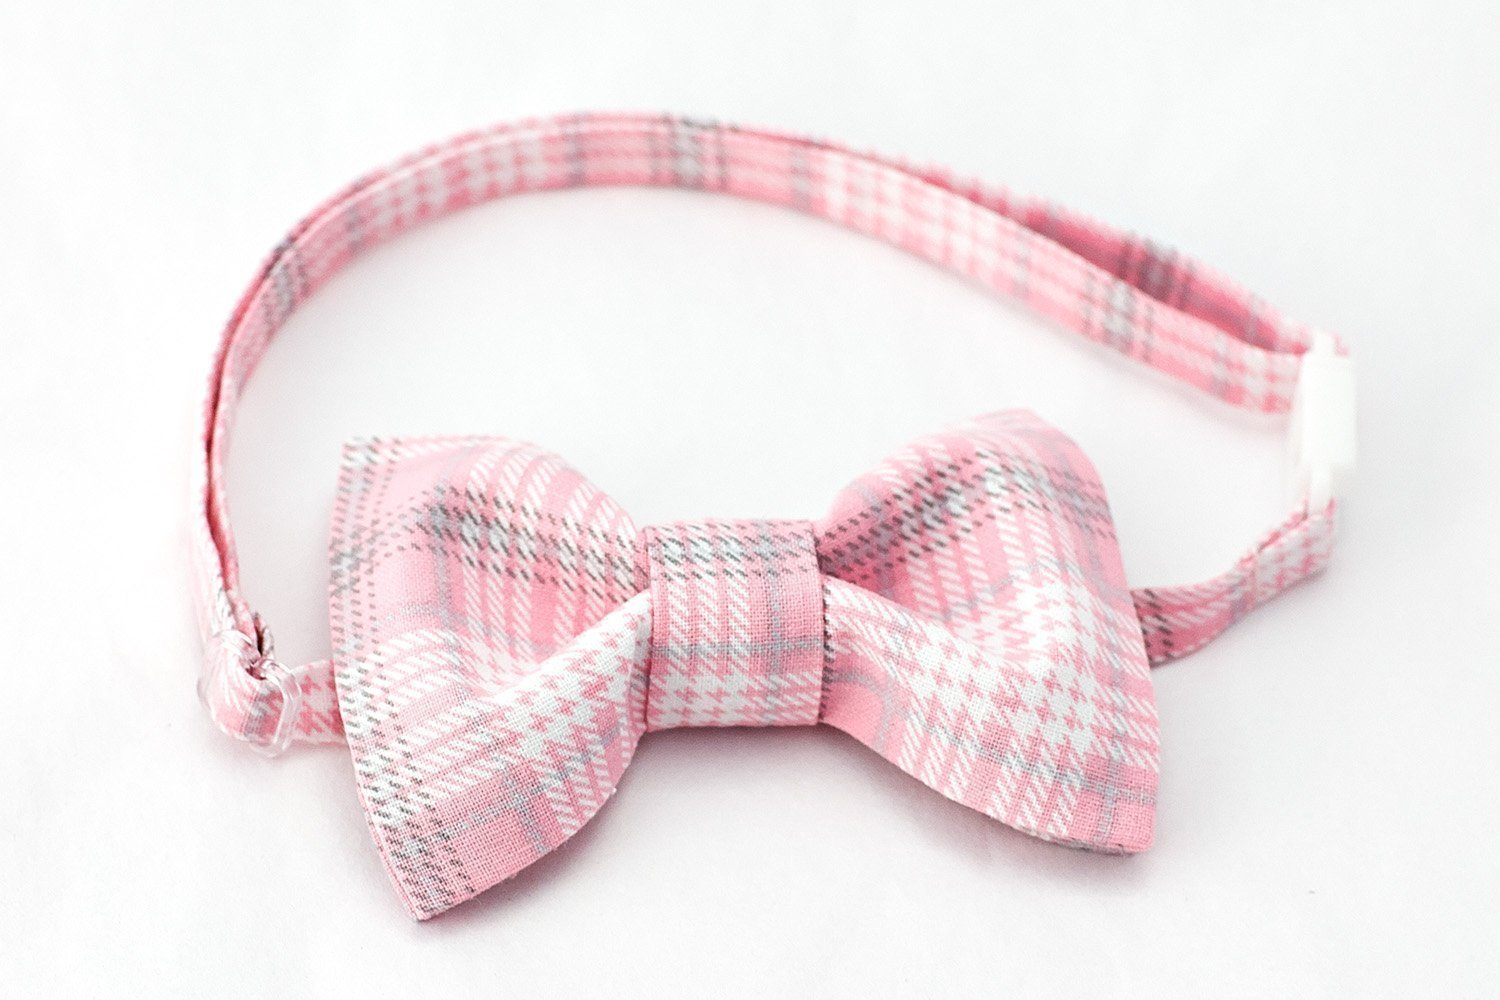 Pink Plaid Bow Tie Boys - Pink/White/Grey Plaid - Adjustable Plastic Clip and Slider Closure - Sizes up to 9 years old